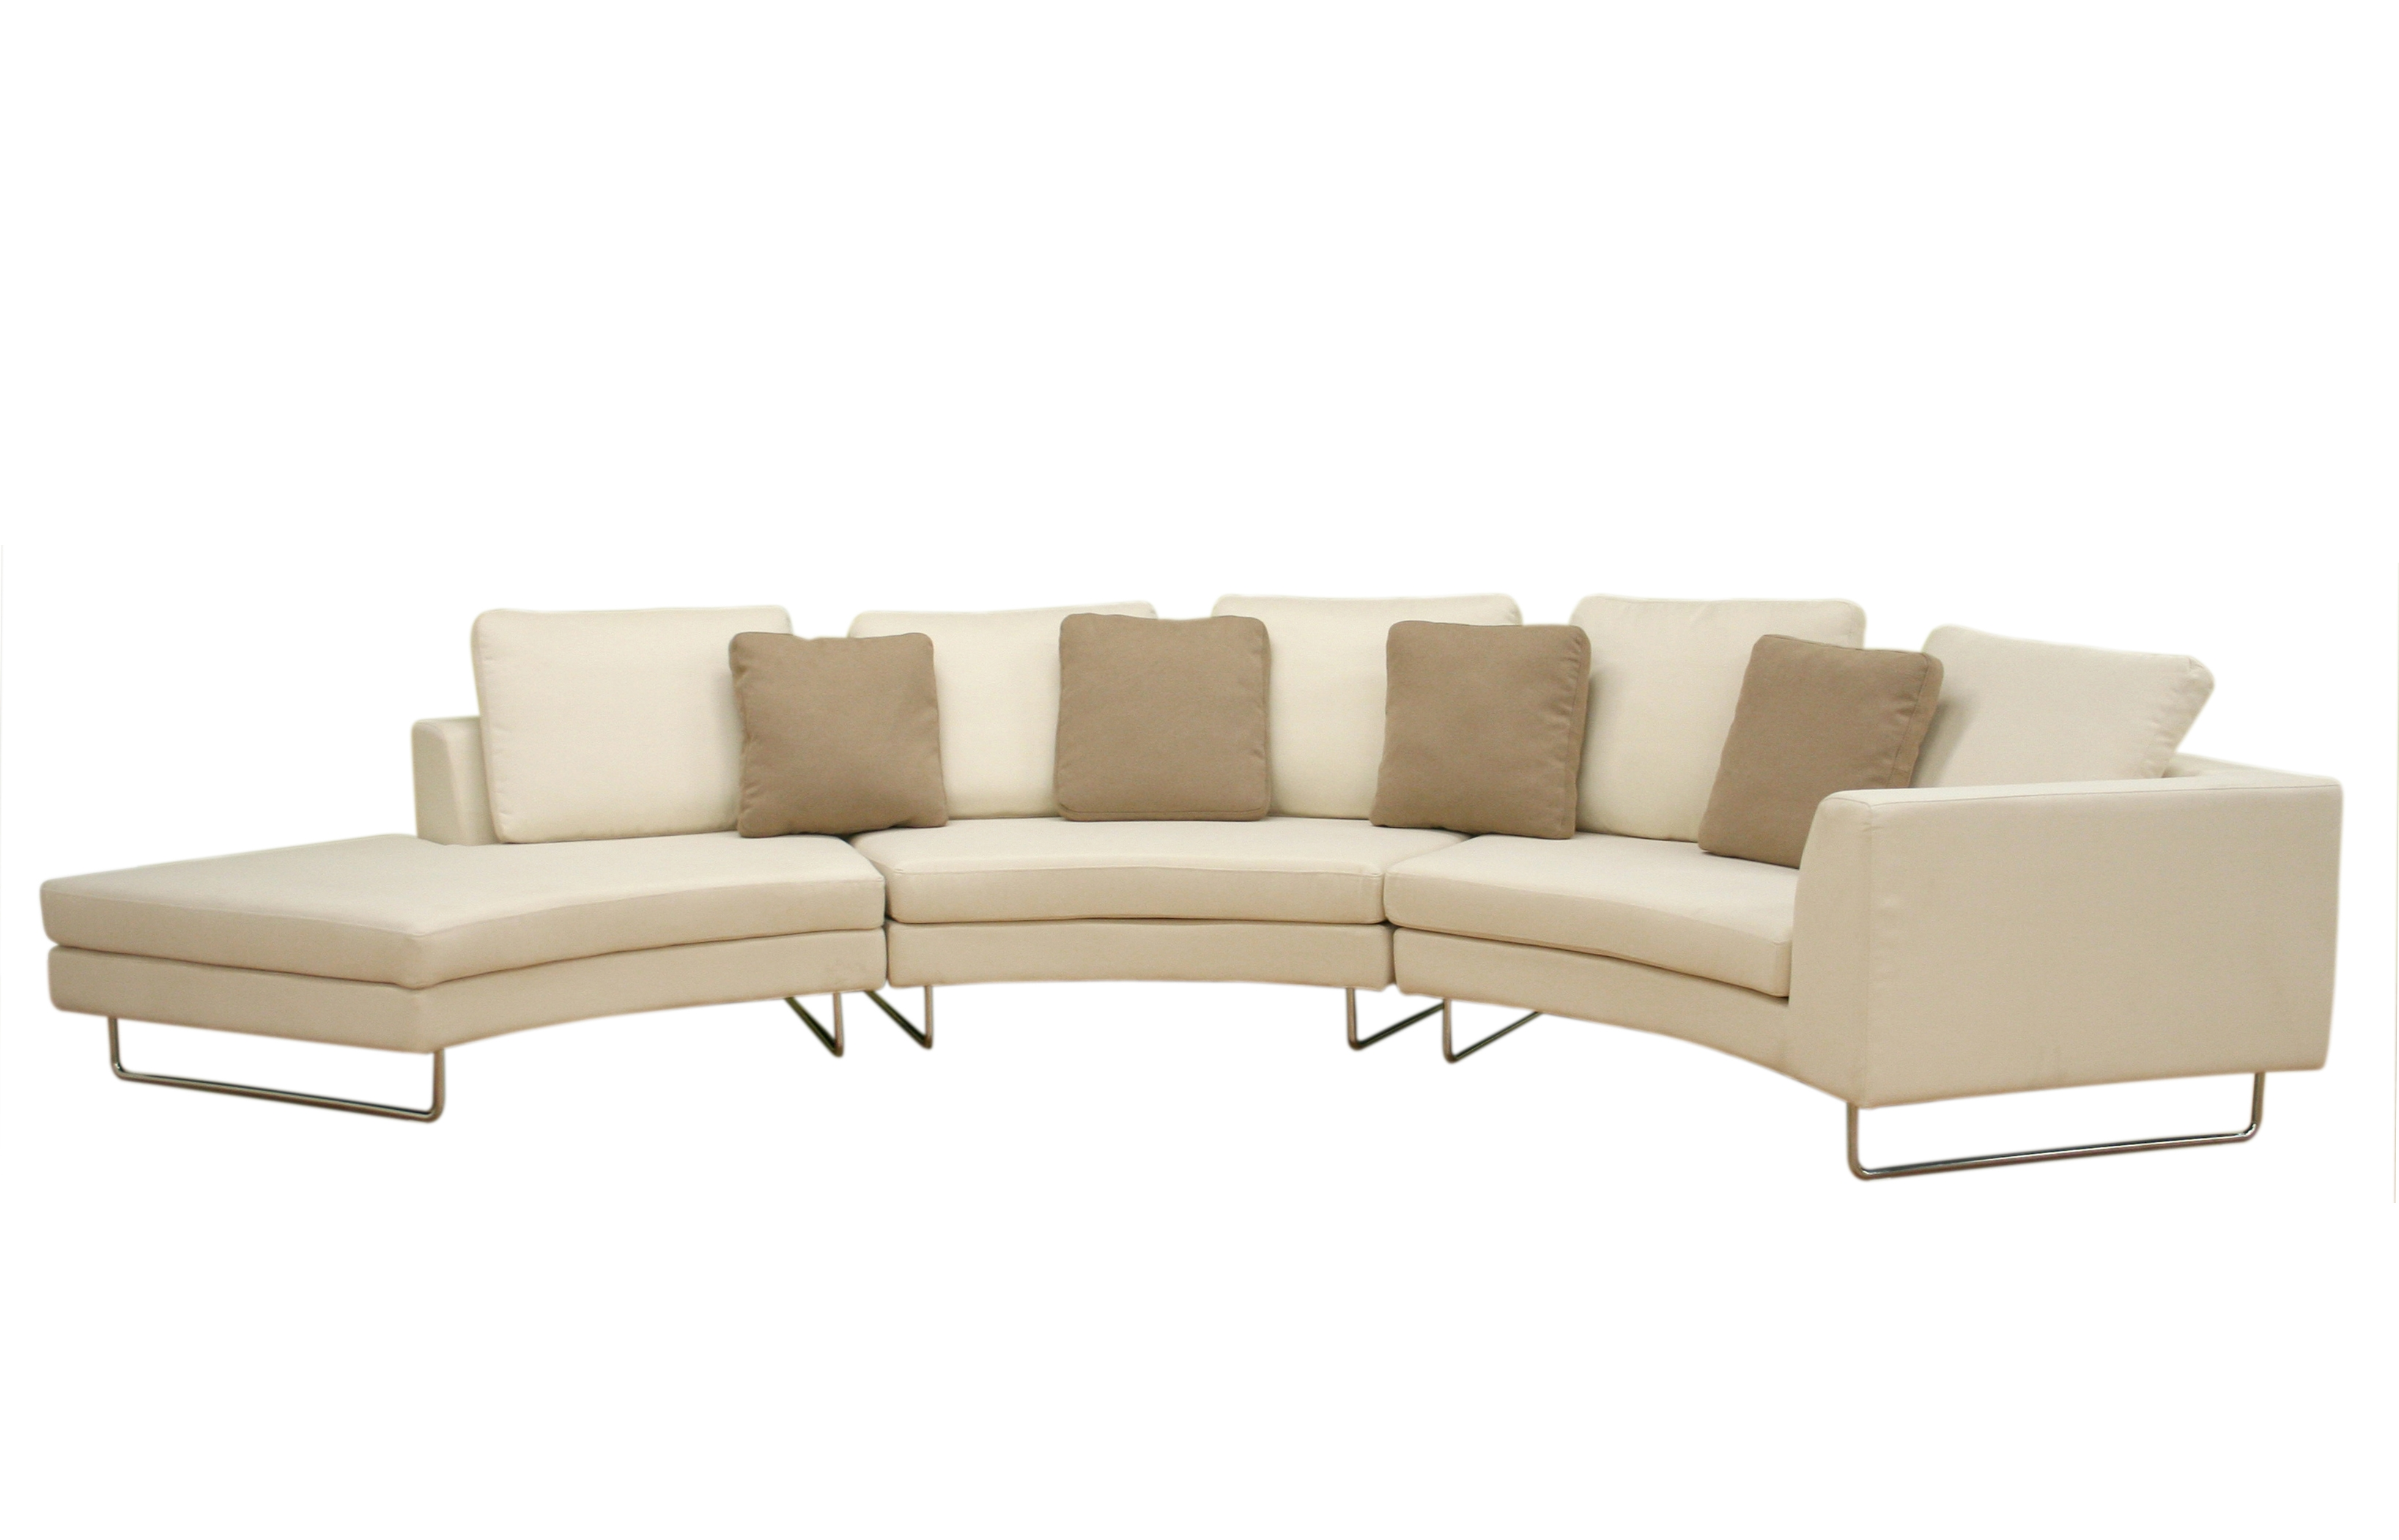 Large Round Curved Sofa Sectional Baxton Studio Lilia Curved 3 Within Contemporary Curved Sofas (View 13 of 15)